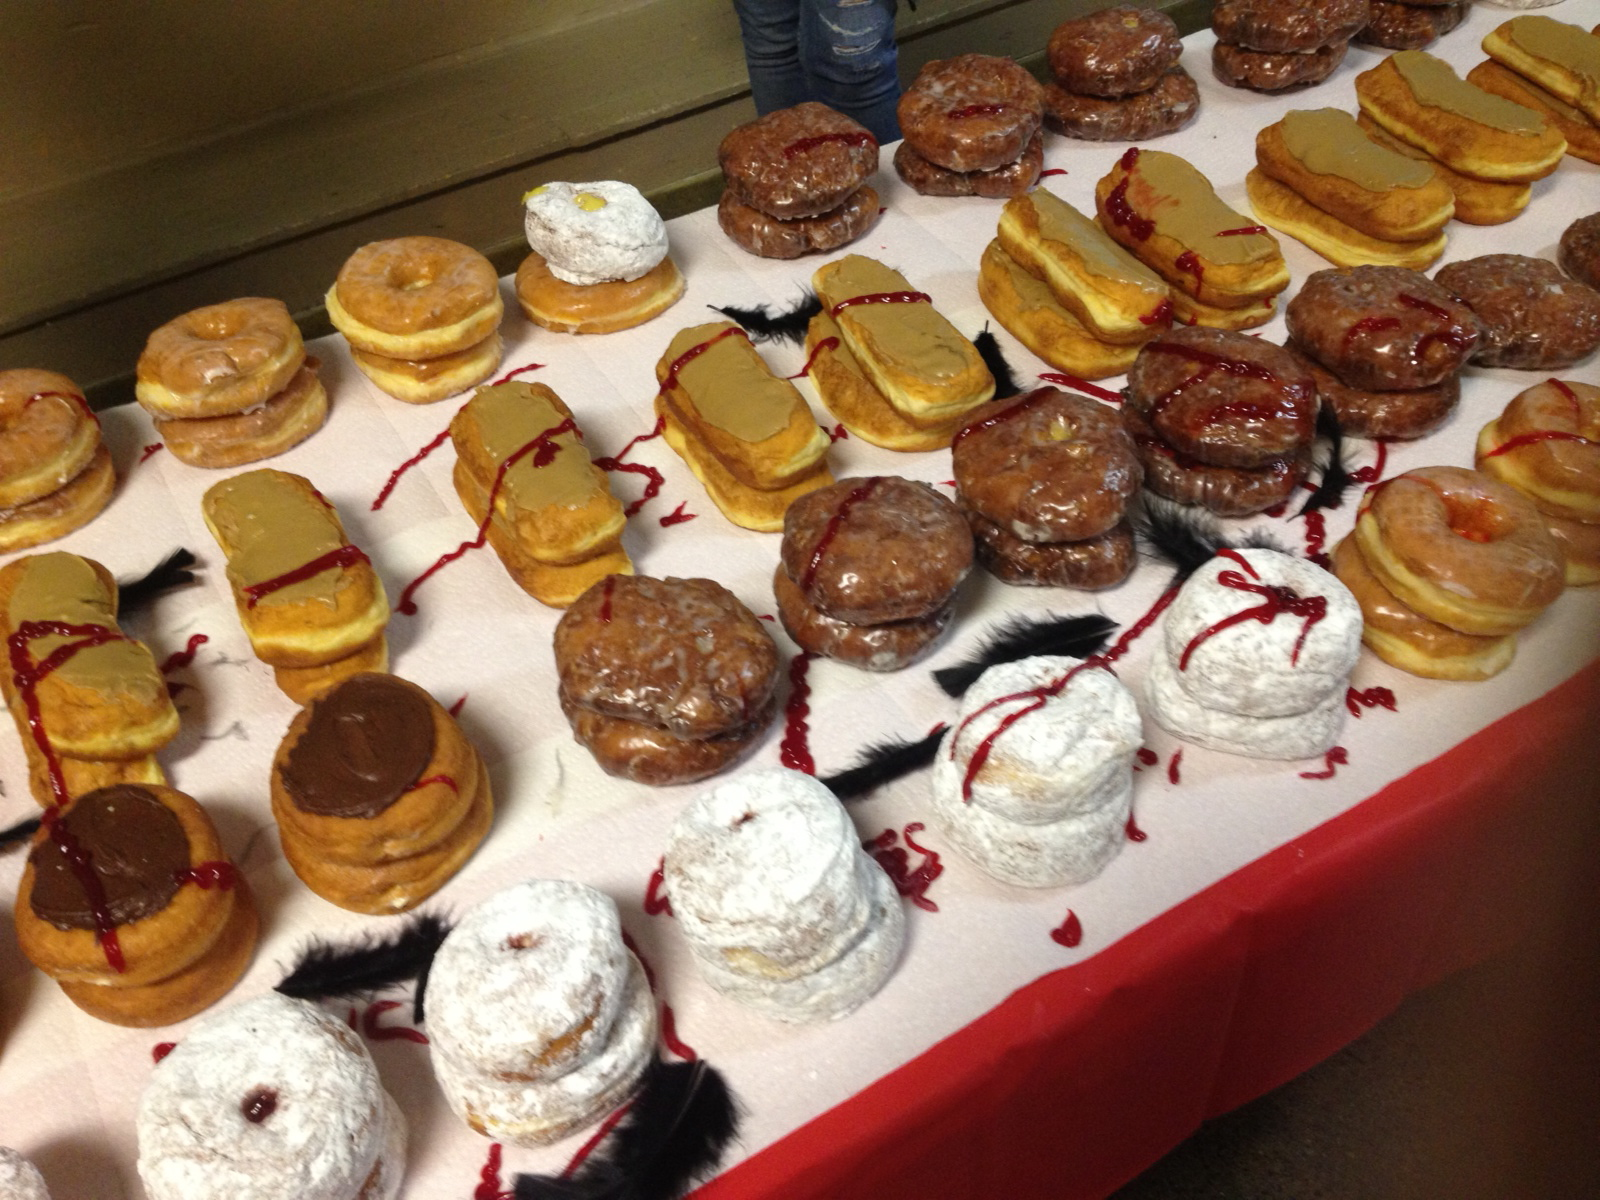 Donuts galore covered with Waldo's shattered remains -- feathers and jam.